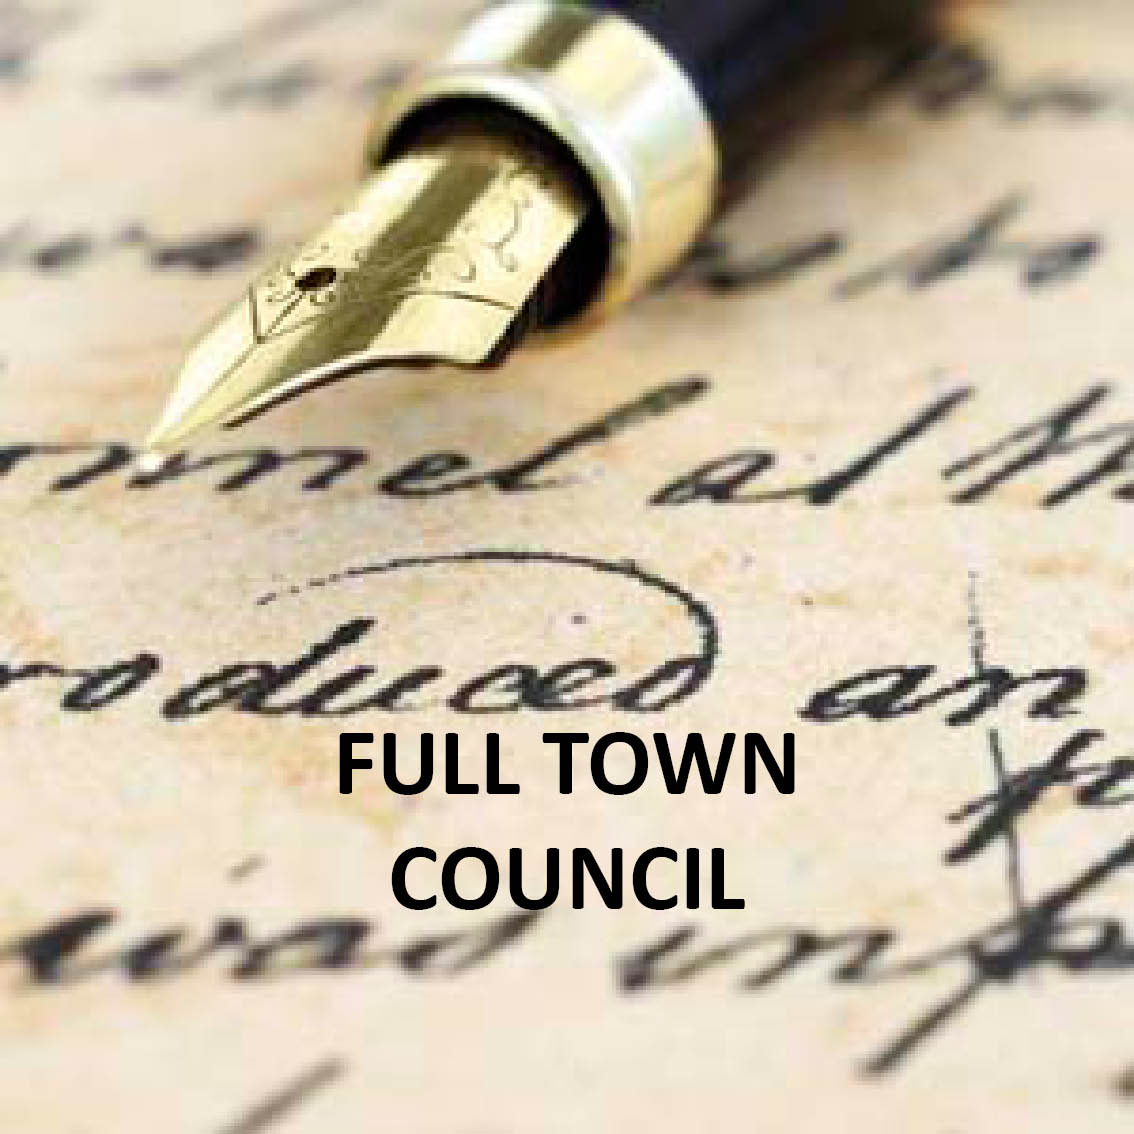 Hyperlink to the list of Full Council meetings